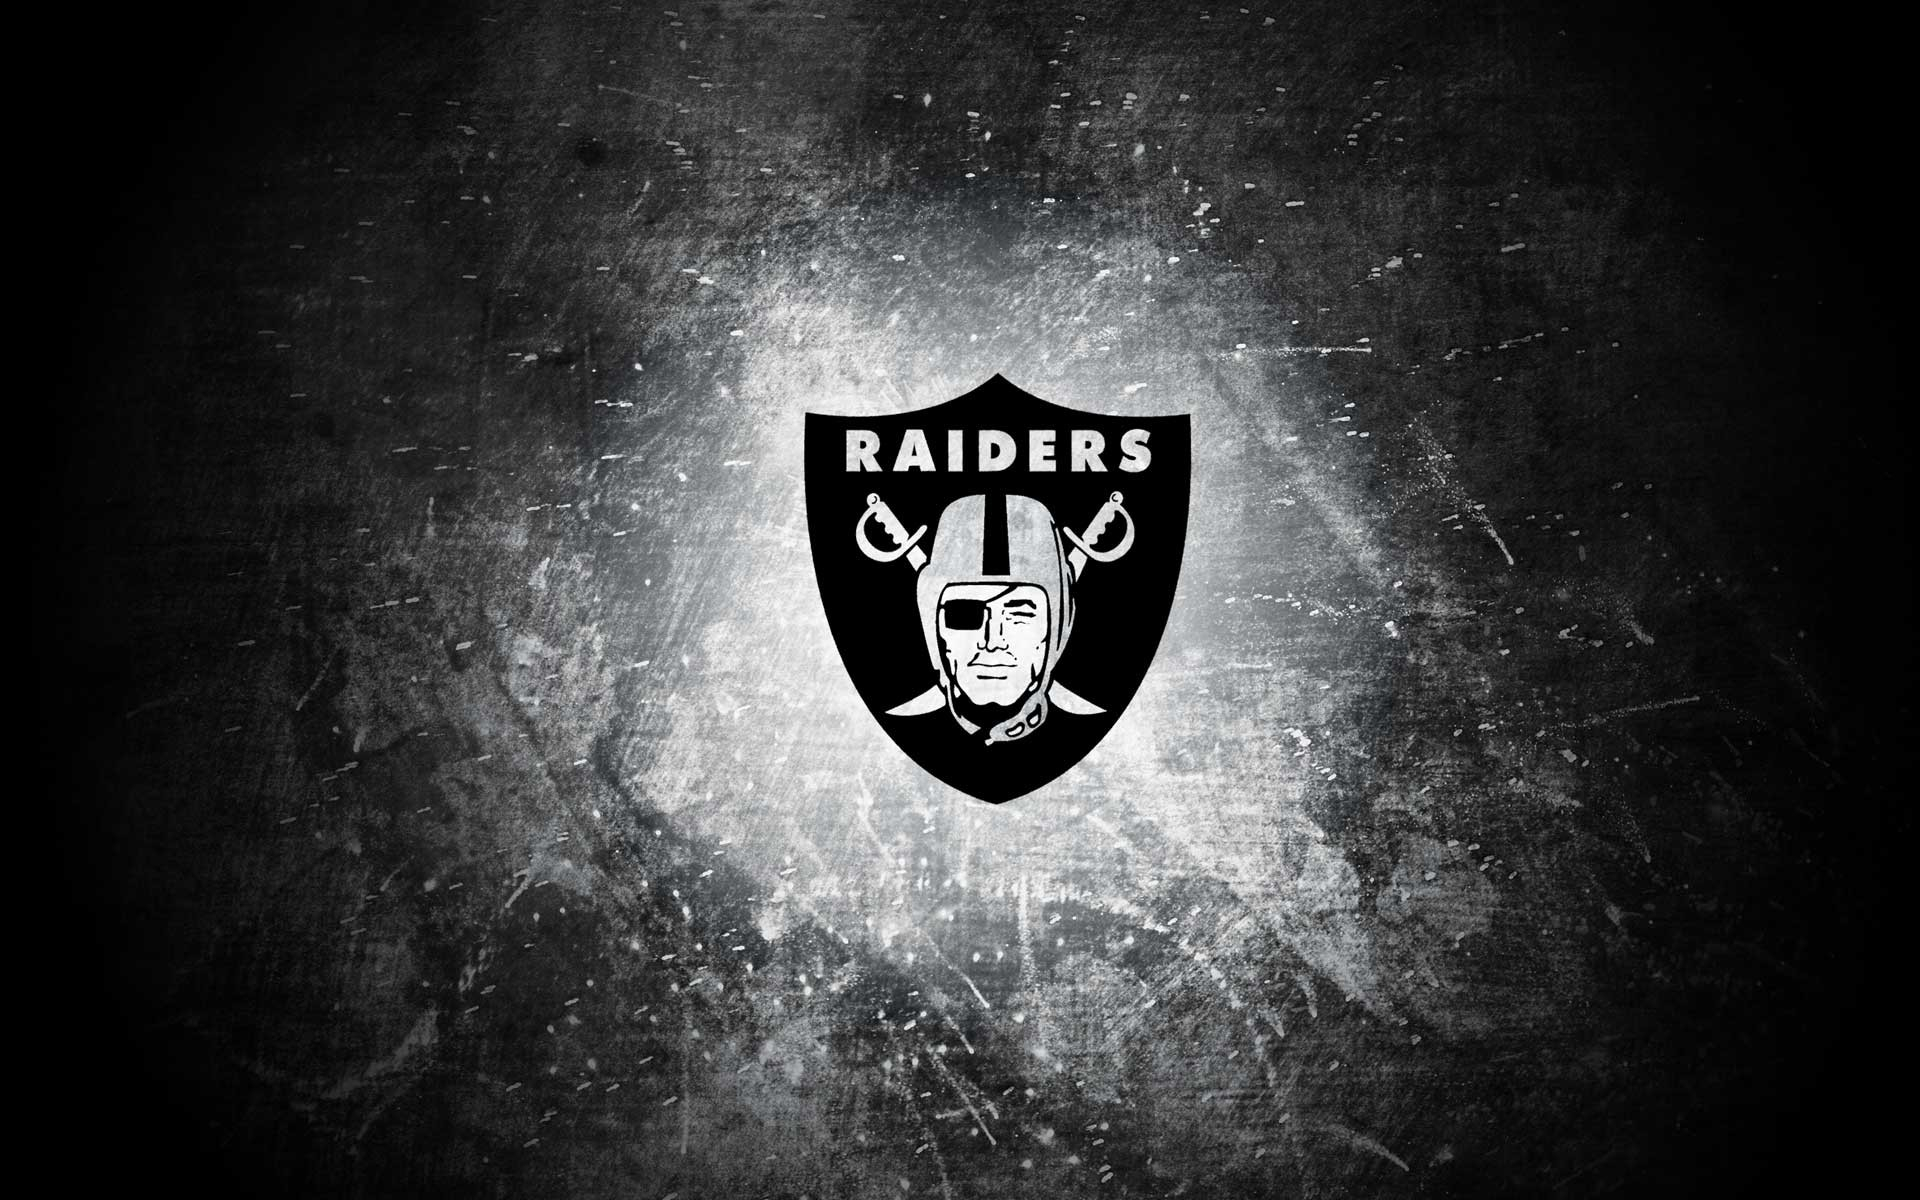 oakland raiders wallpaper and screensavers (71+ images)